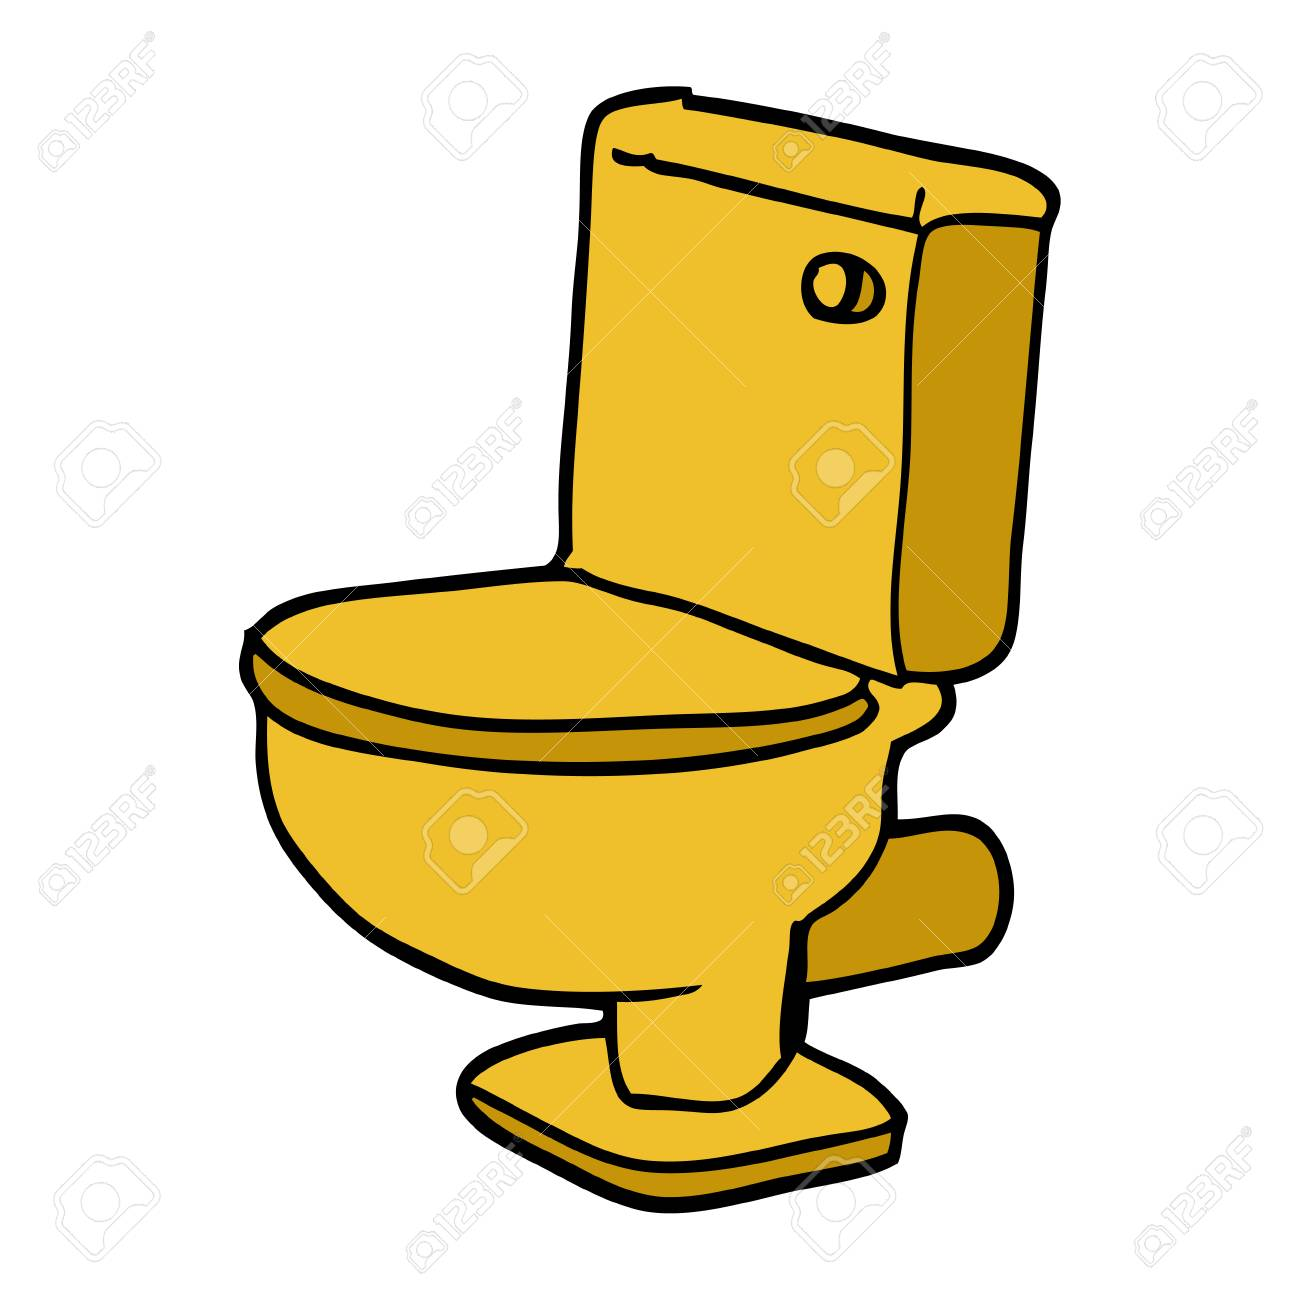 Cartoon Doodle Golden Toilet Royalty Free Cliparts Vectors And Stock Illustration Image 110866736